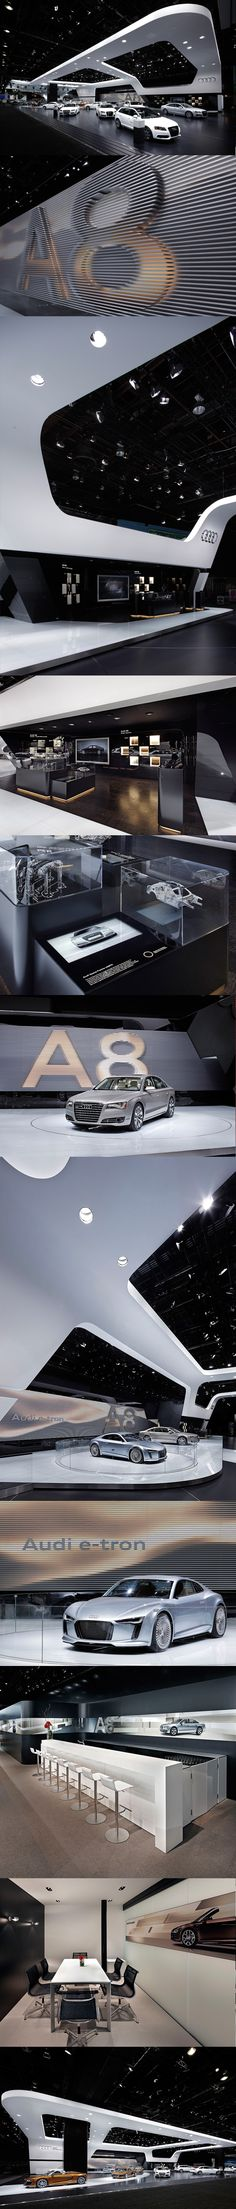 Audi Detroit 2010 by Malte Schweers, via Behance